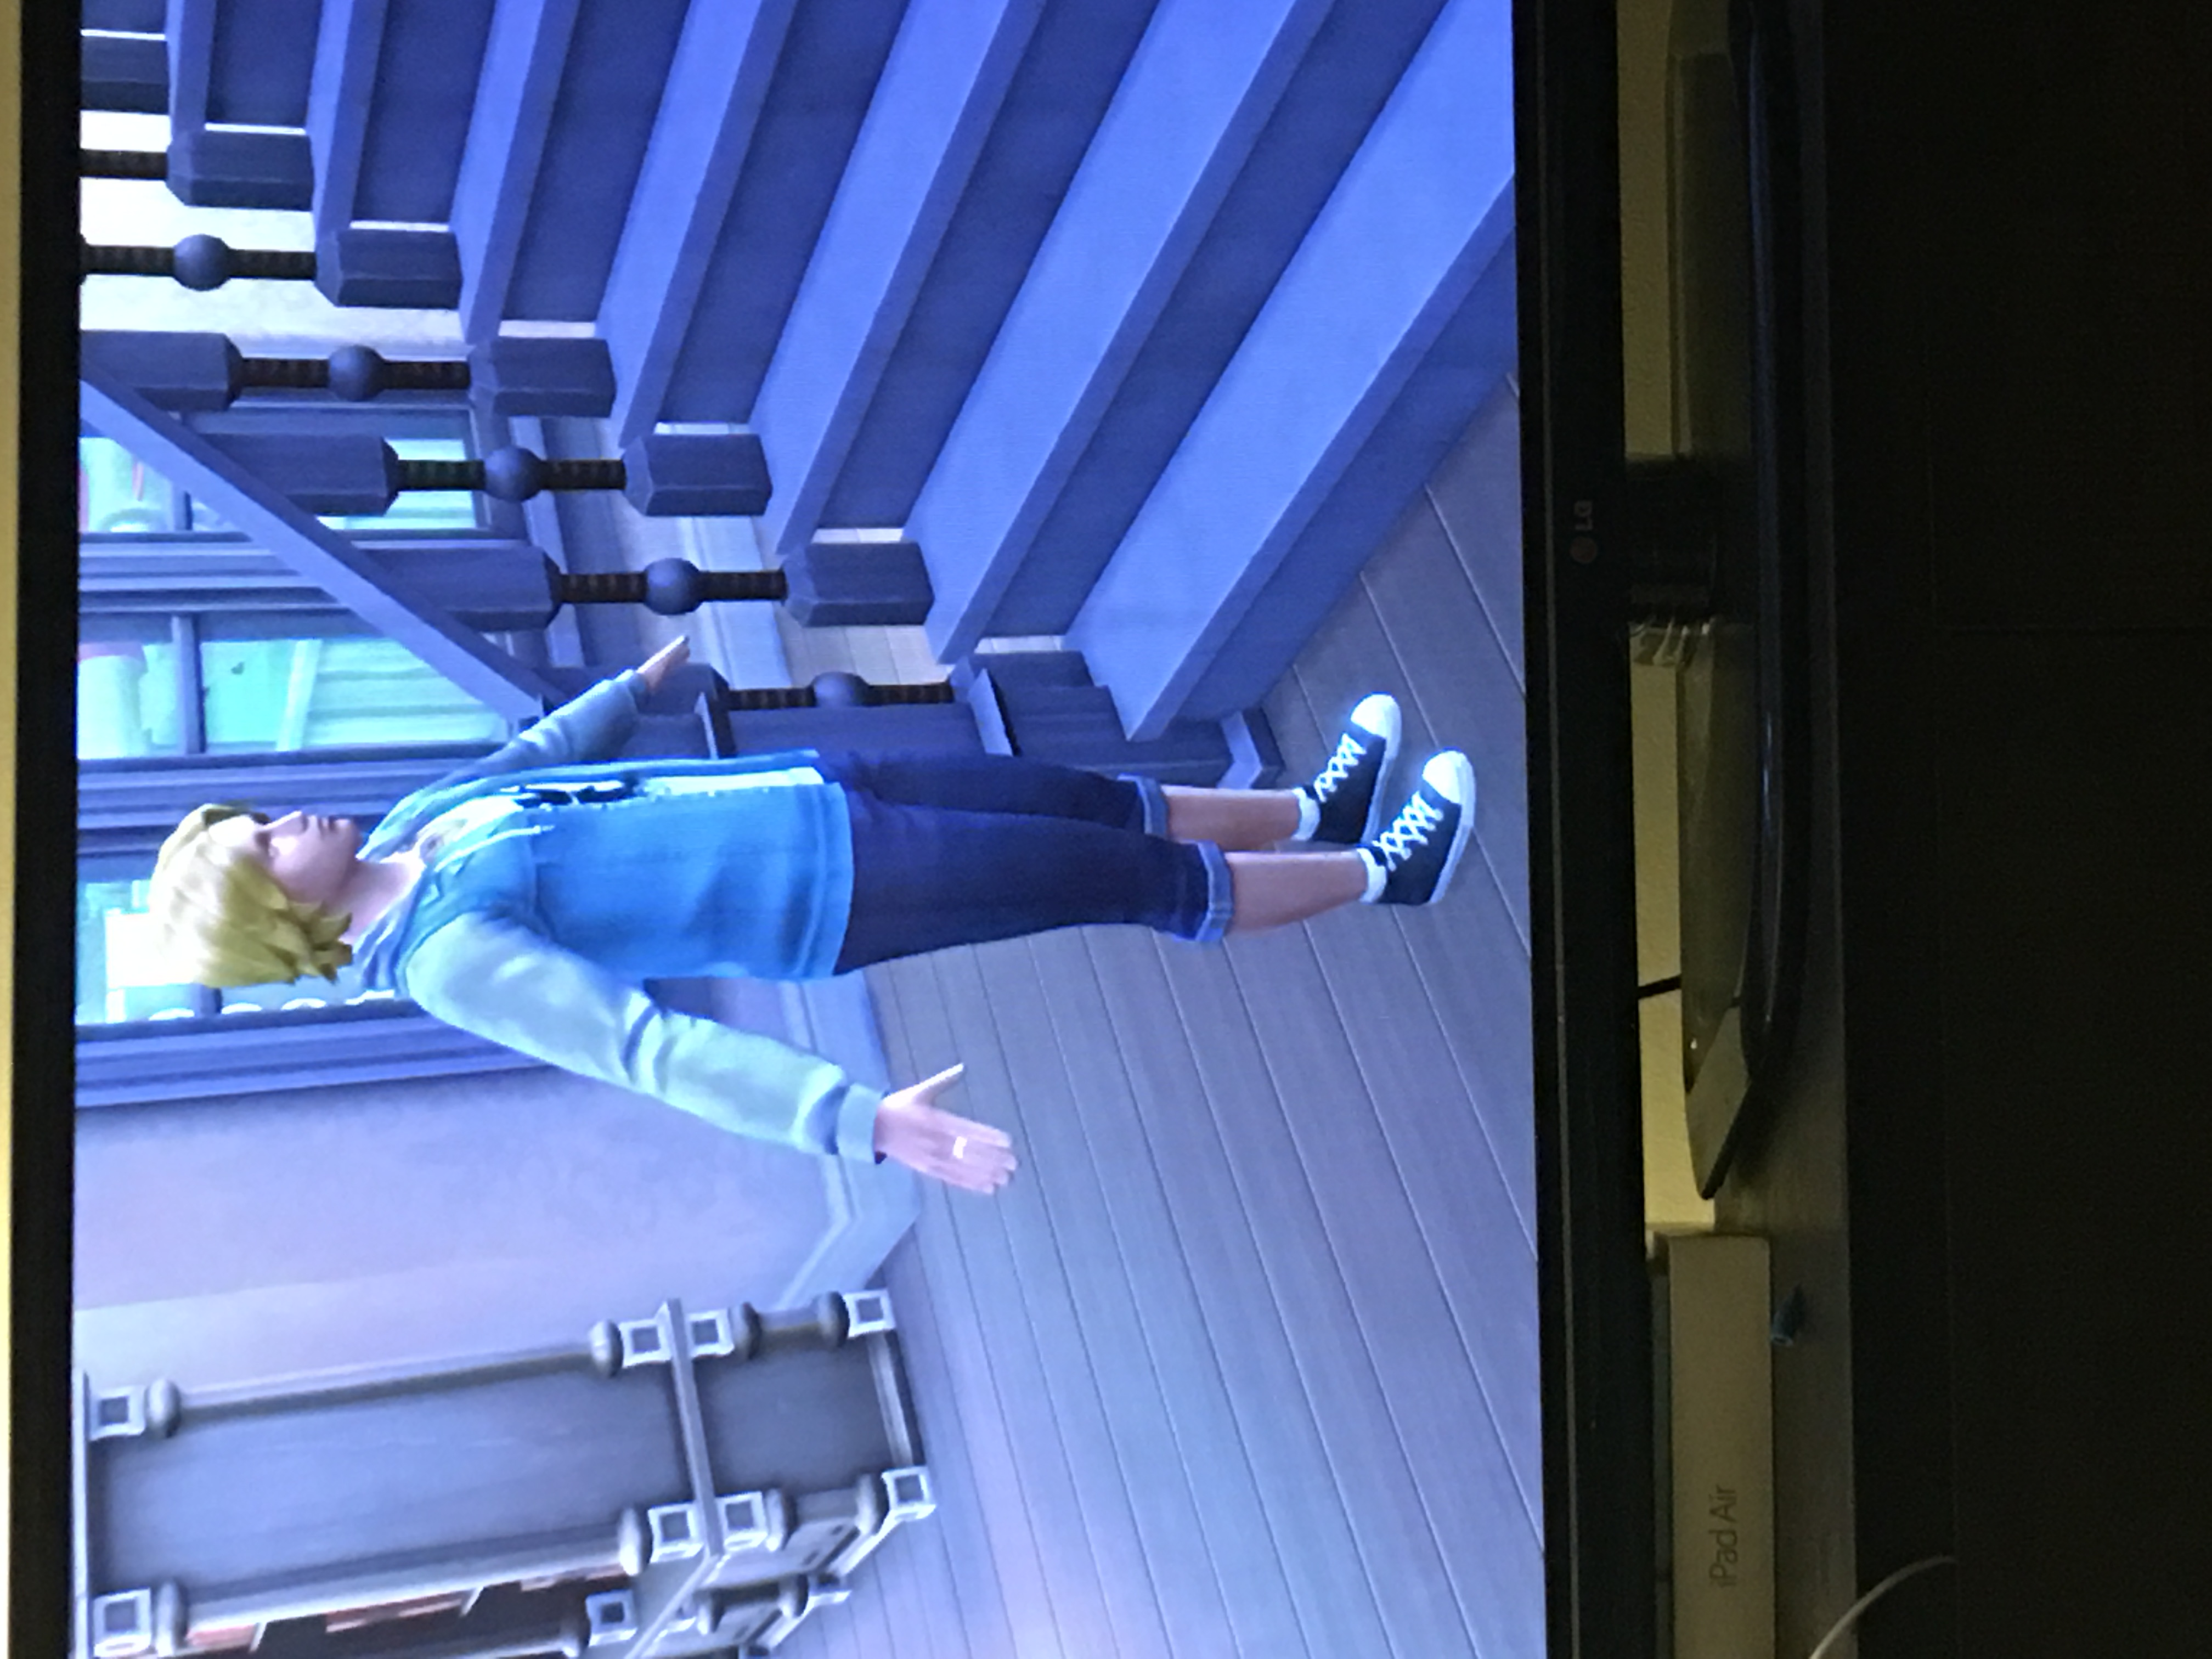 PS4] Sim stuck in T-pose at the bottom of the stairs - Answer HQ